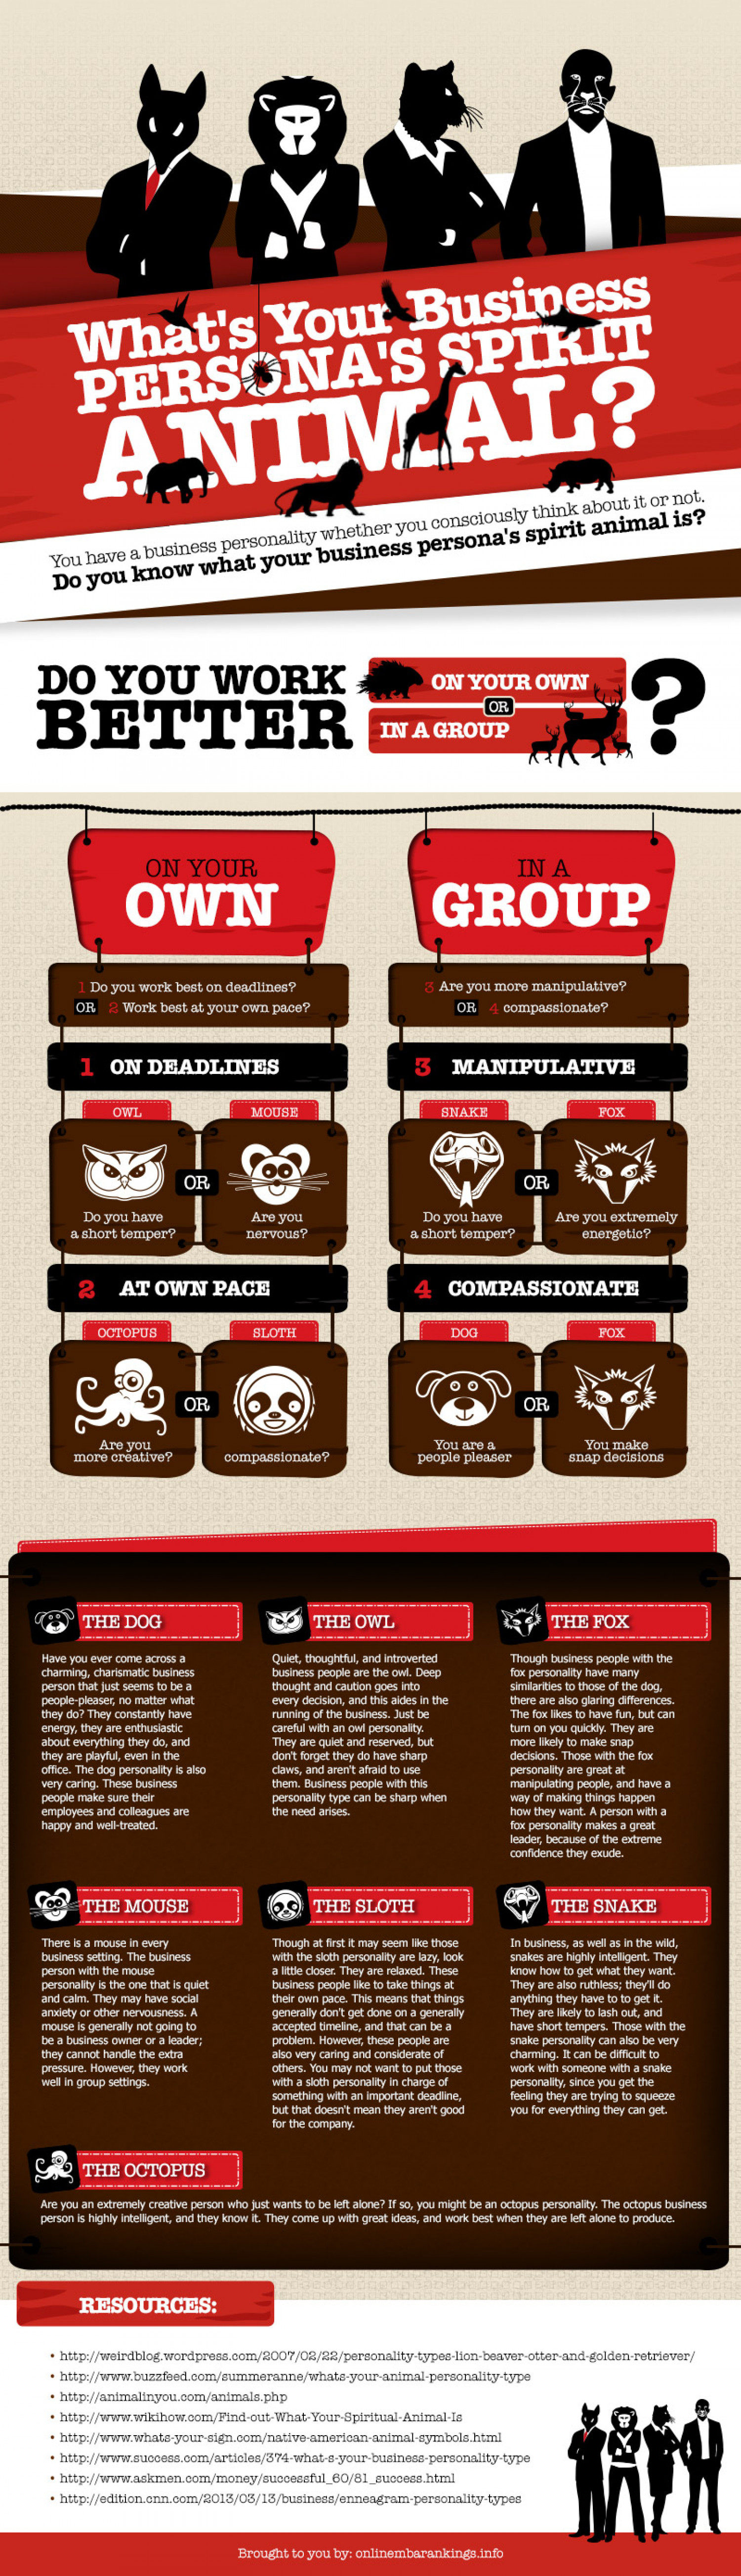 What's Your Business Persona's Spirit Animal? Infographic